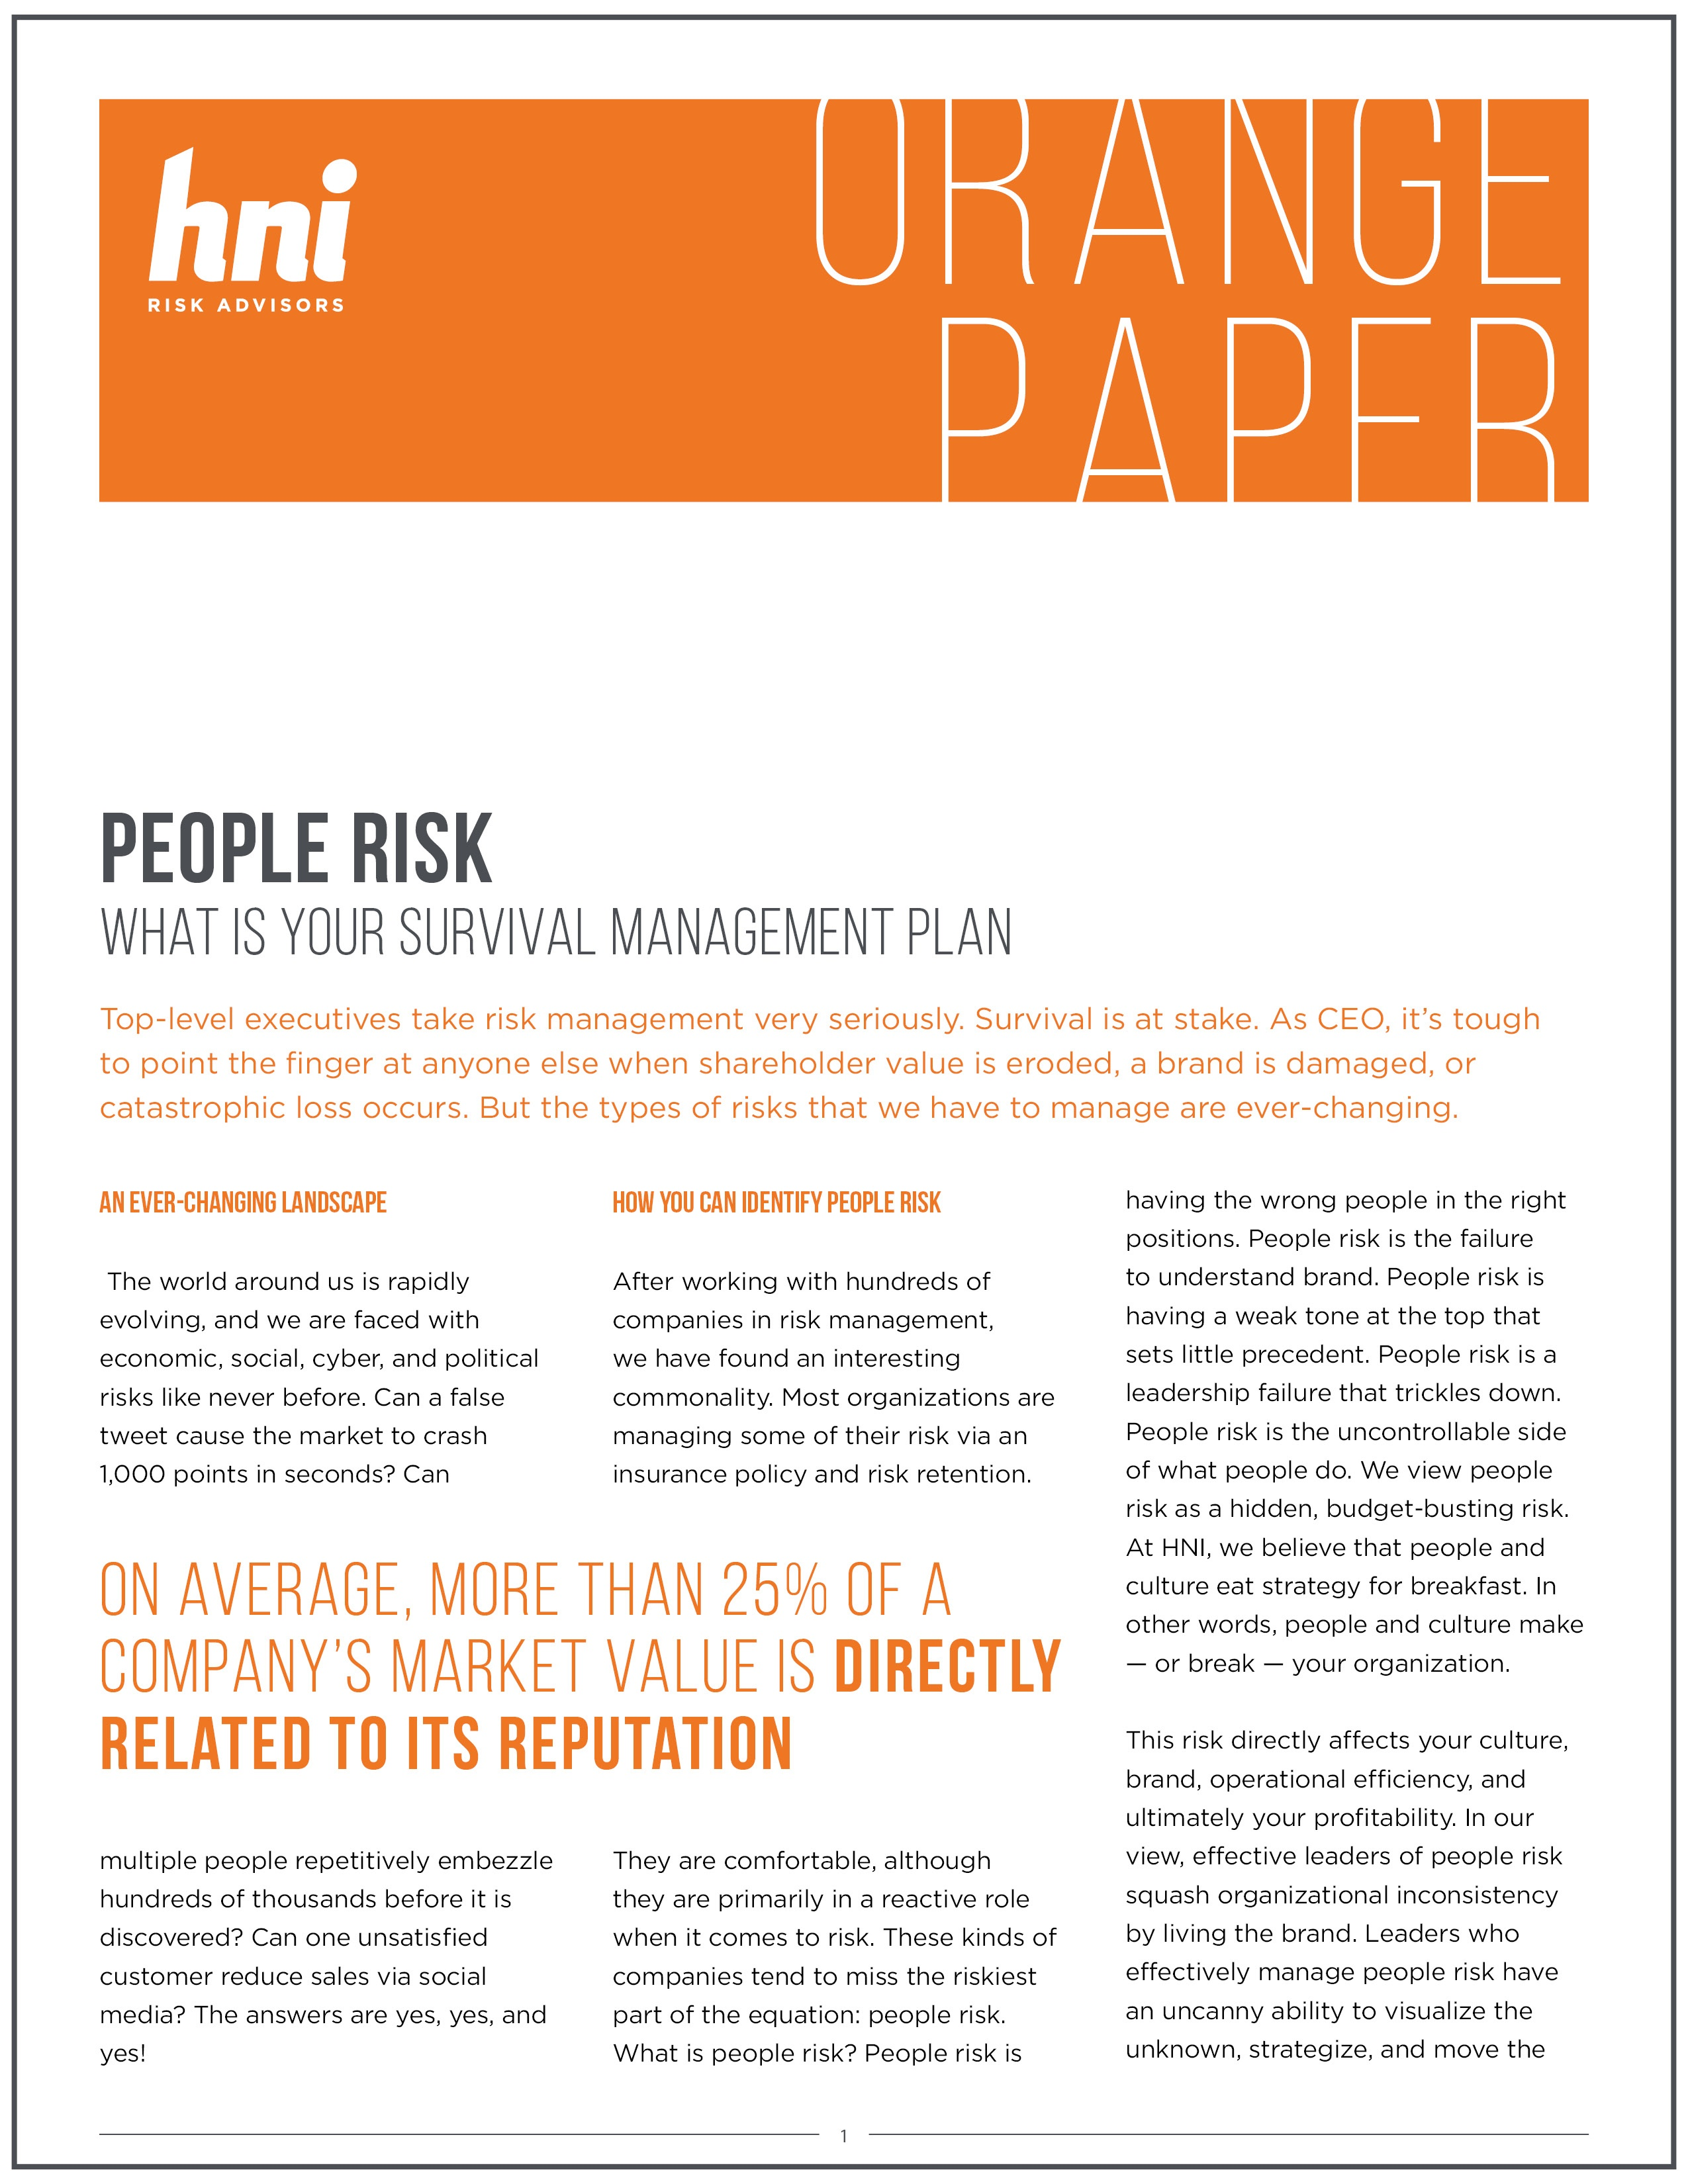 HNI_Orange Paper_People Risk-1.jpg